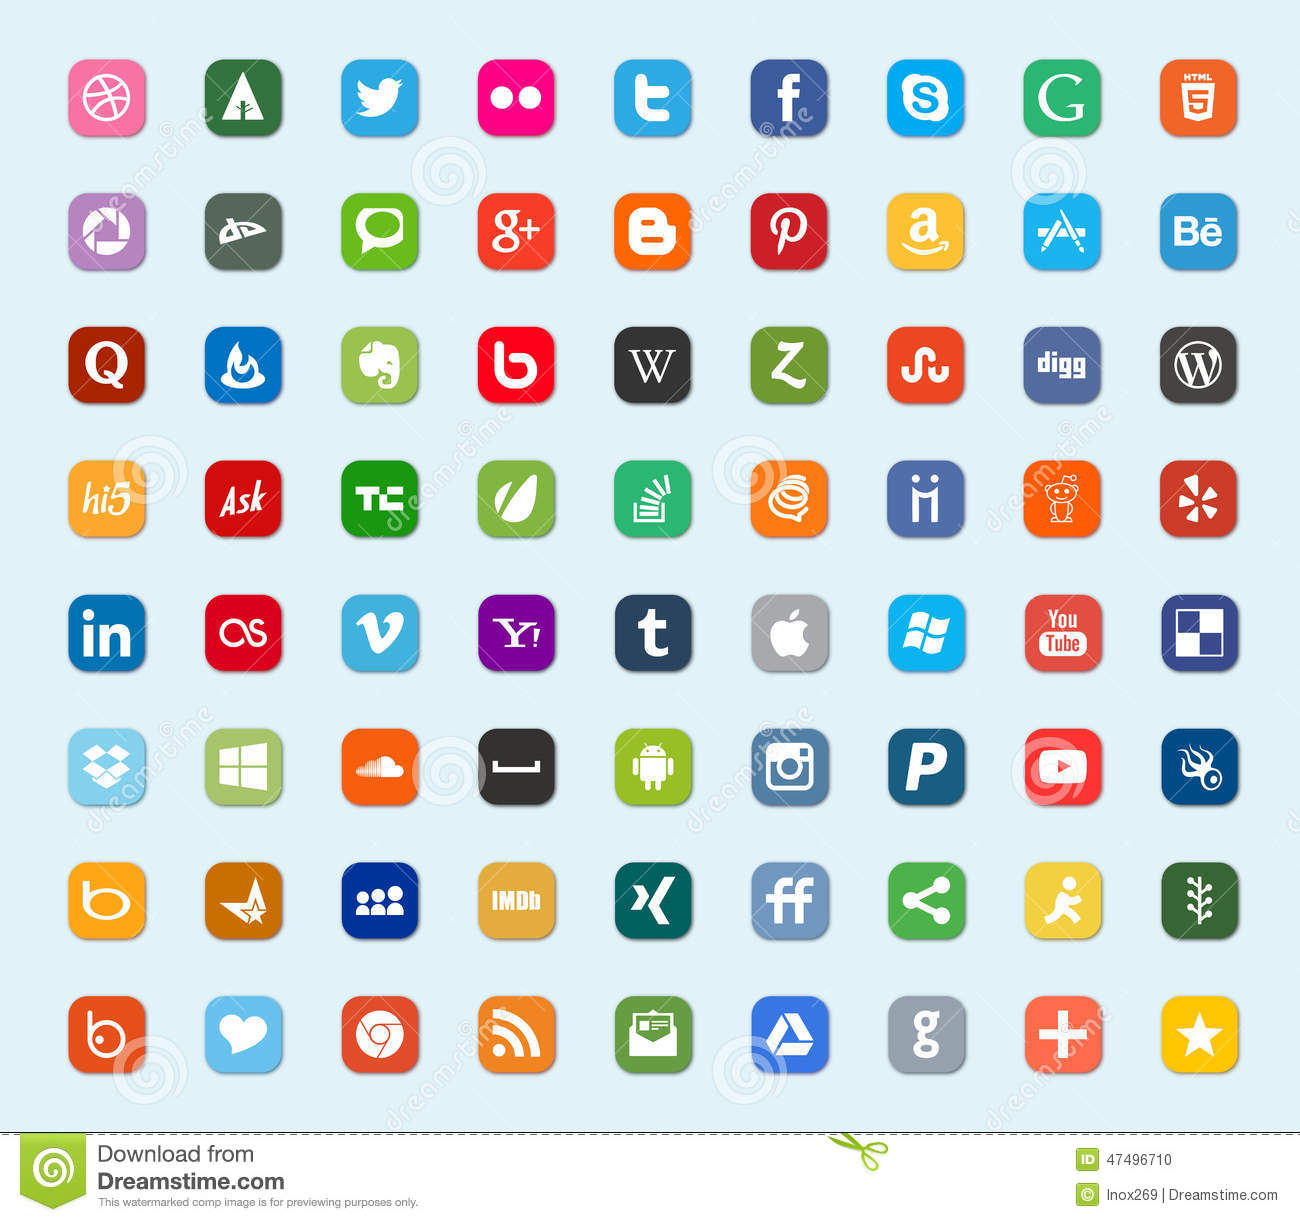 Social media and network color flat icons